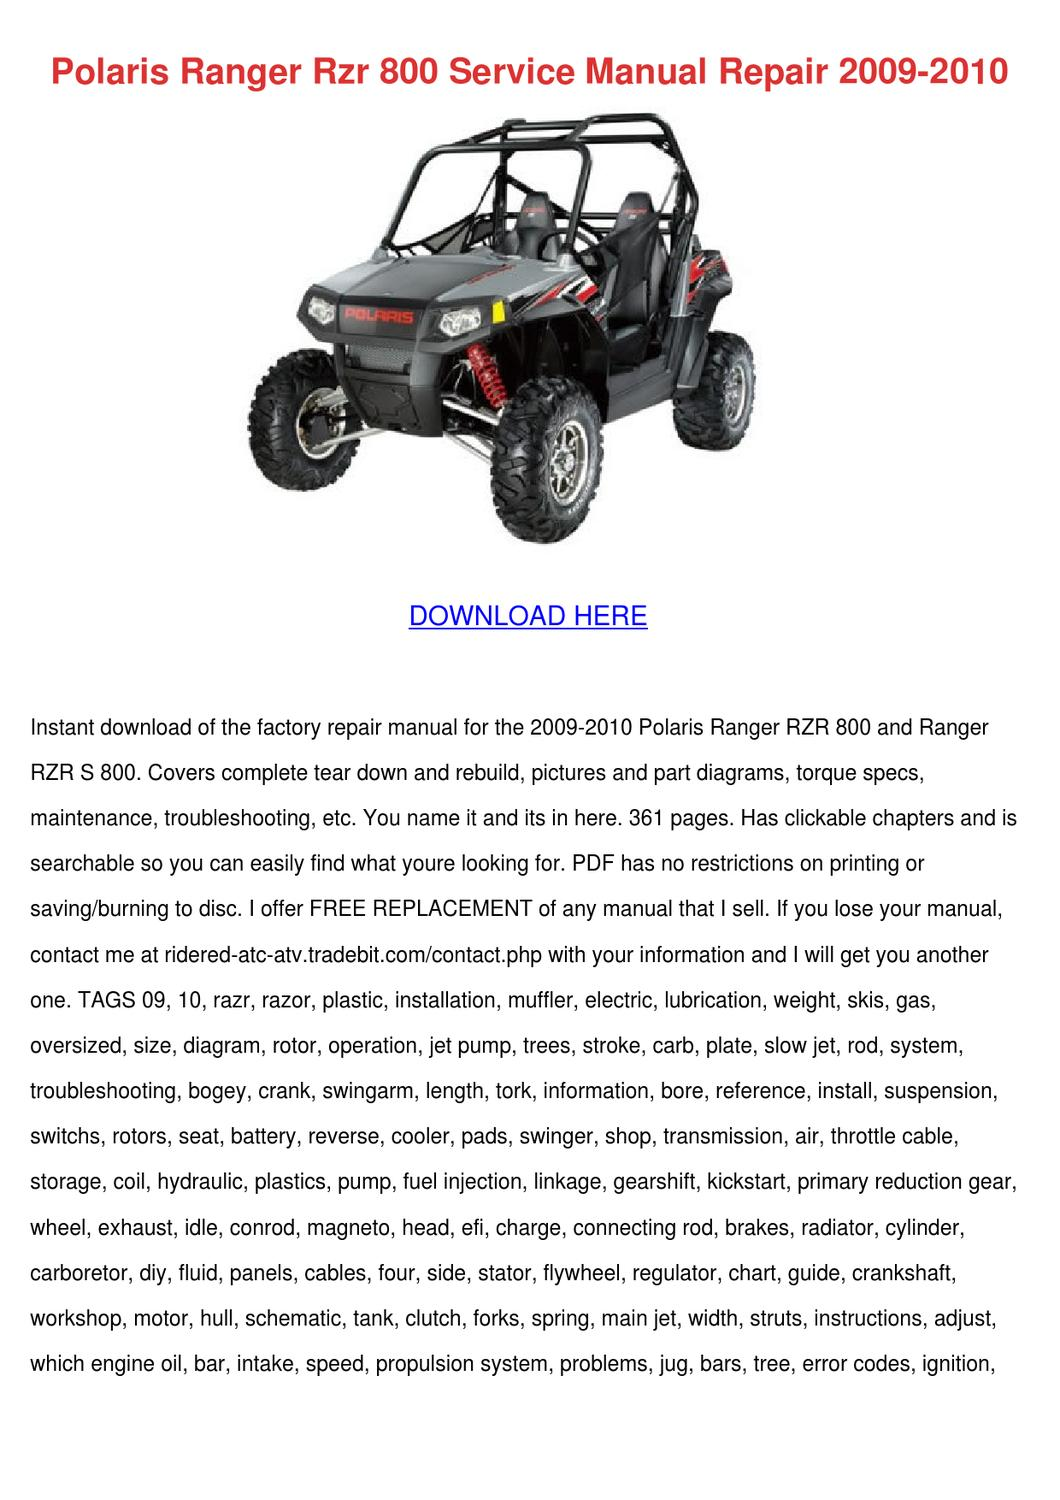 2009 polaris rzr 800 service manual pdf